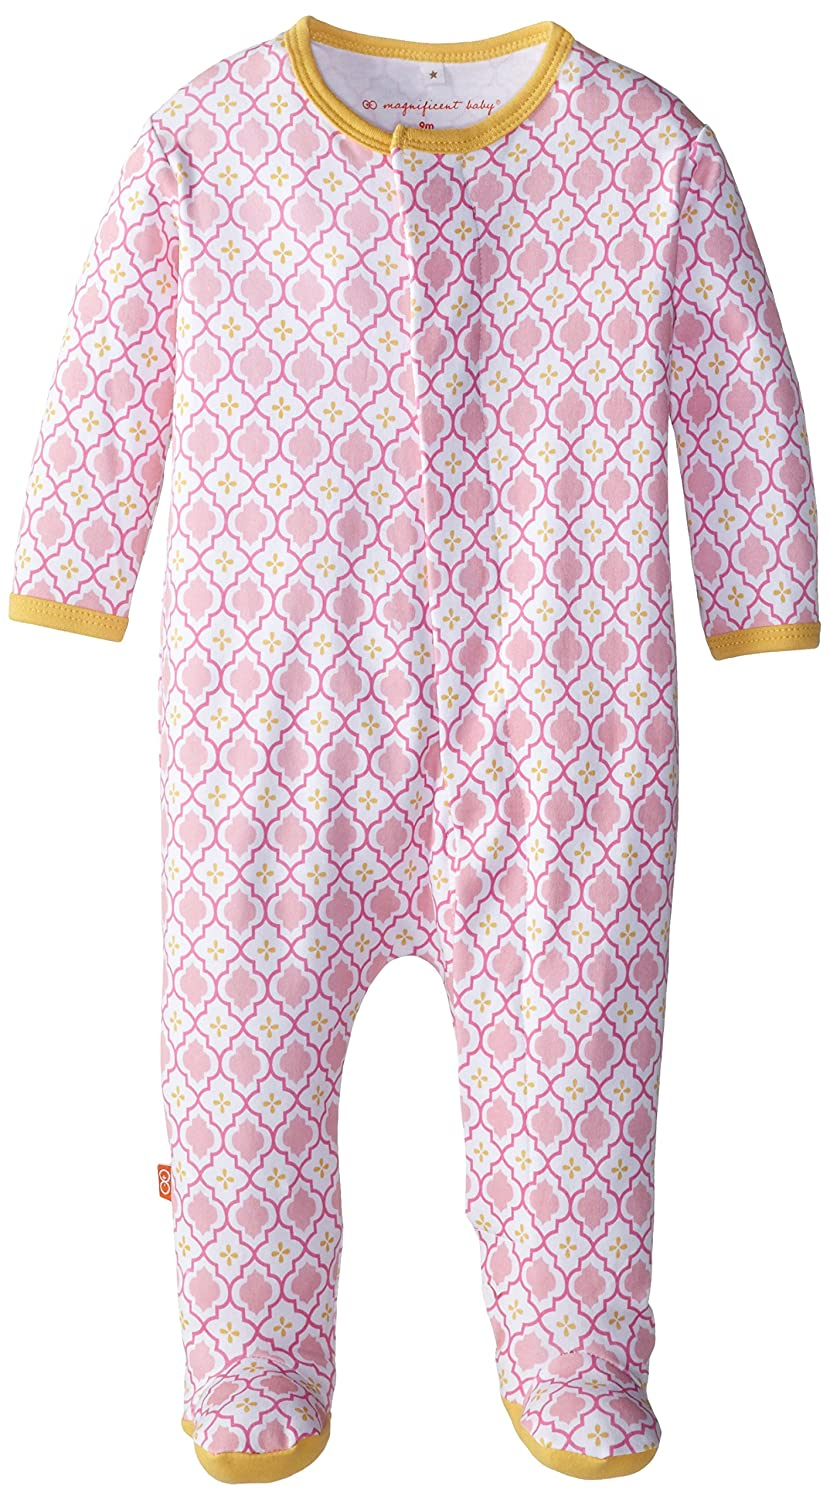 Magnificent Baby Baby Girls' Footies